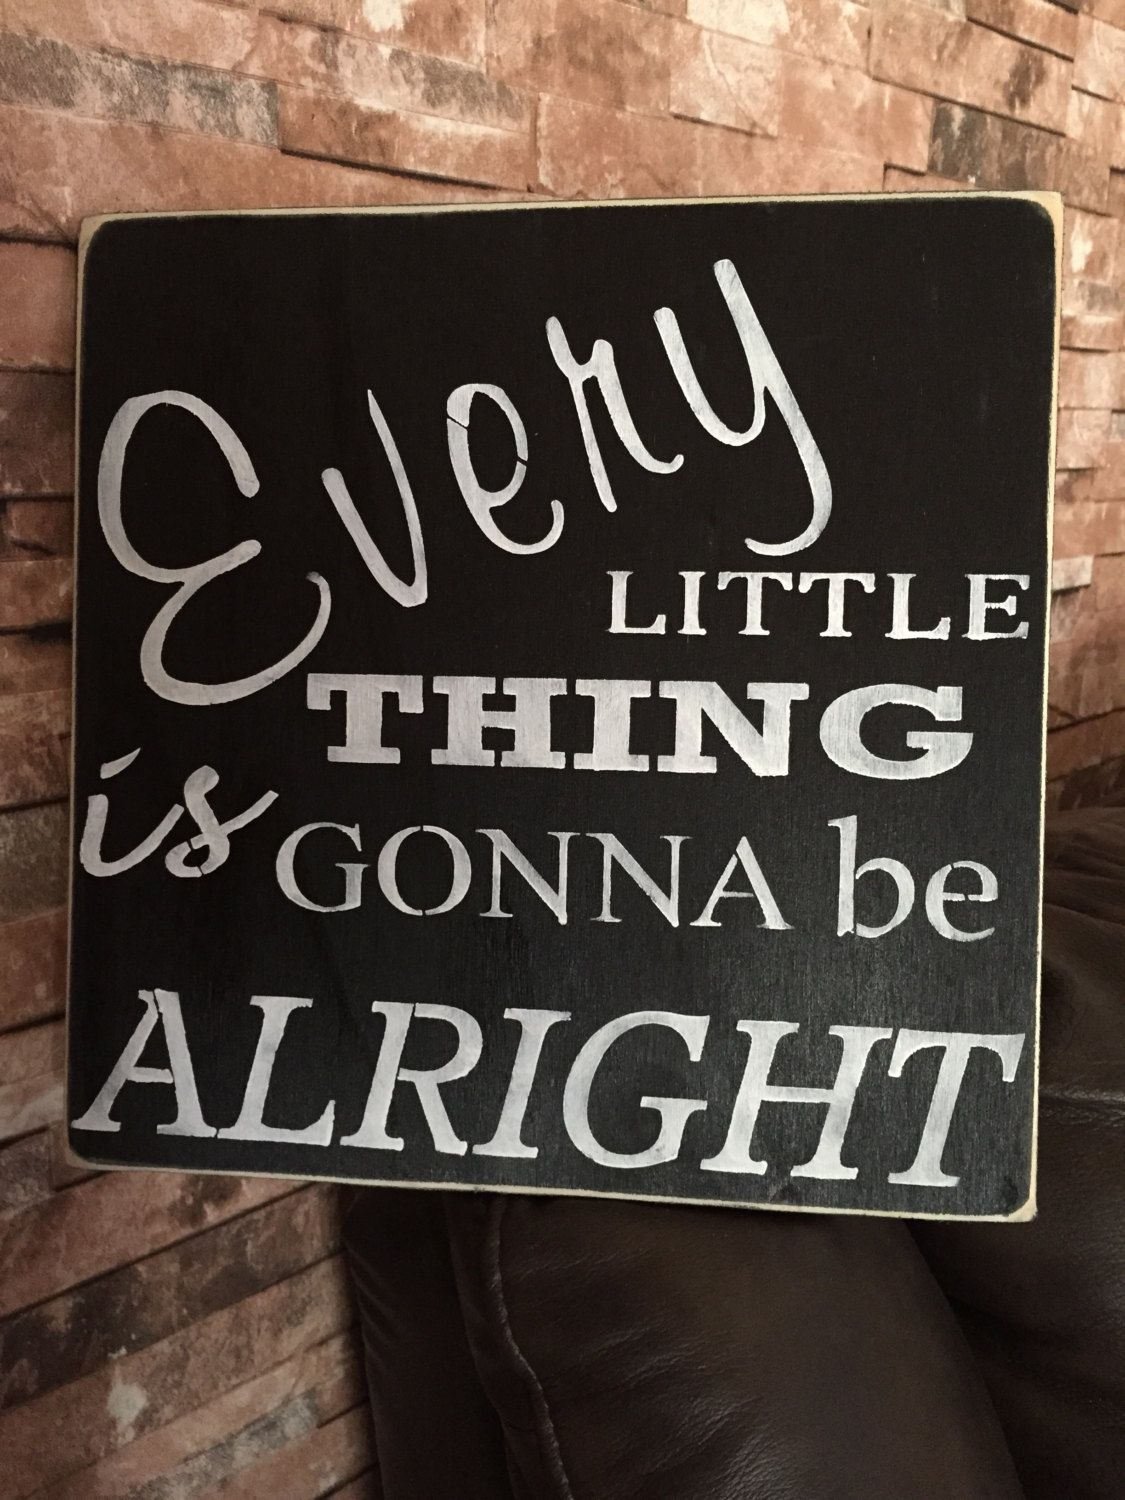 Every Little Thing Is Gonna Be Alright Distressed Wood Sign by KHRustics on Etsy https://www.etsy.com/listing/244864205/every-little-thing-is-gonna-be-alright